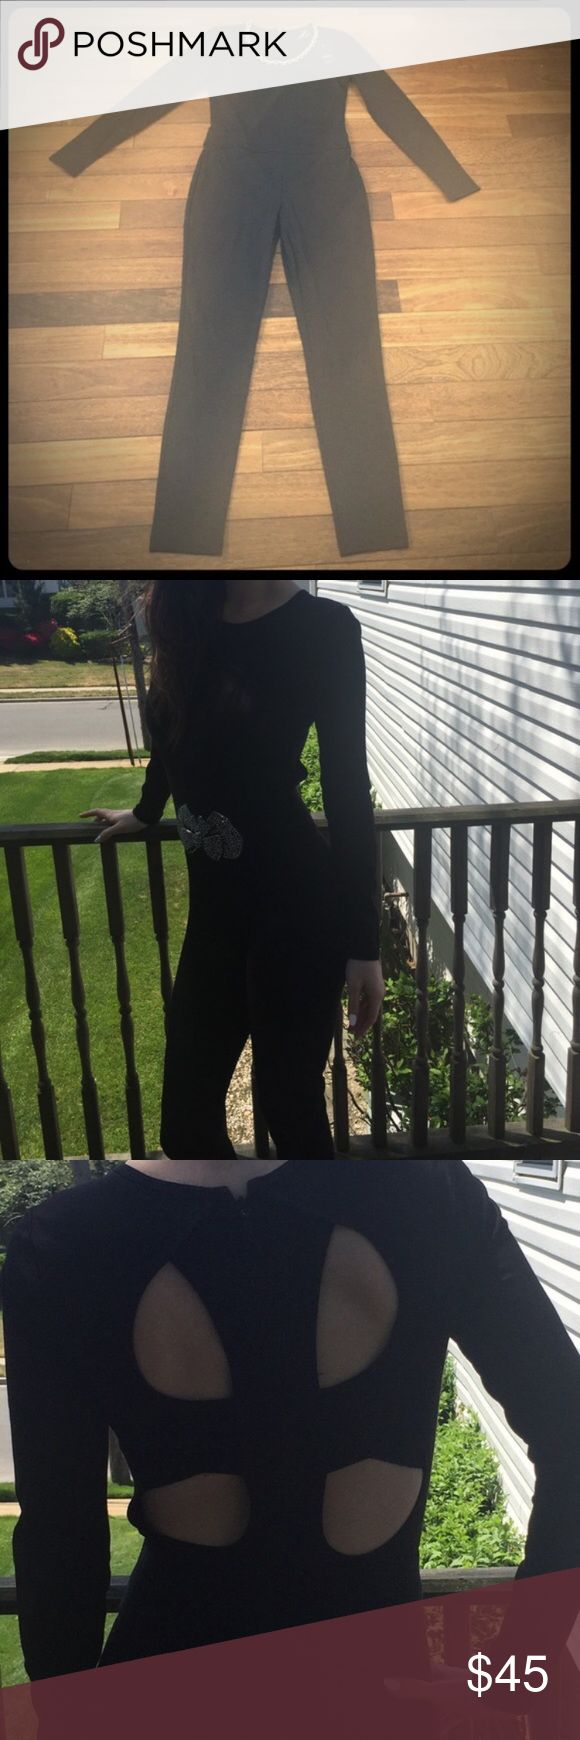 Black one piece jumpsuit One piece black jumpsuit. Tight fitting and beautiful for  dressy occasion. Can also be dressed down! Add necklace for the perfect look! Zippered back. bebe Pants Jumpsuits & Rompers